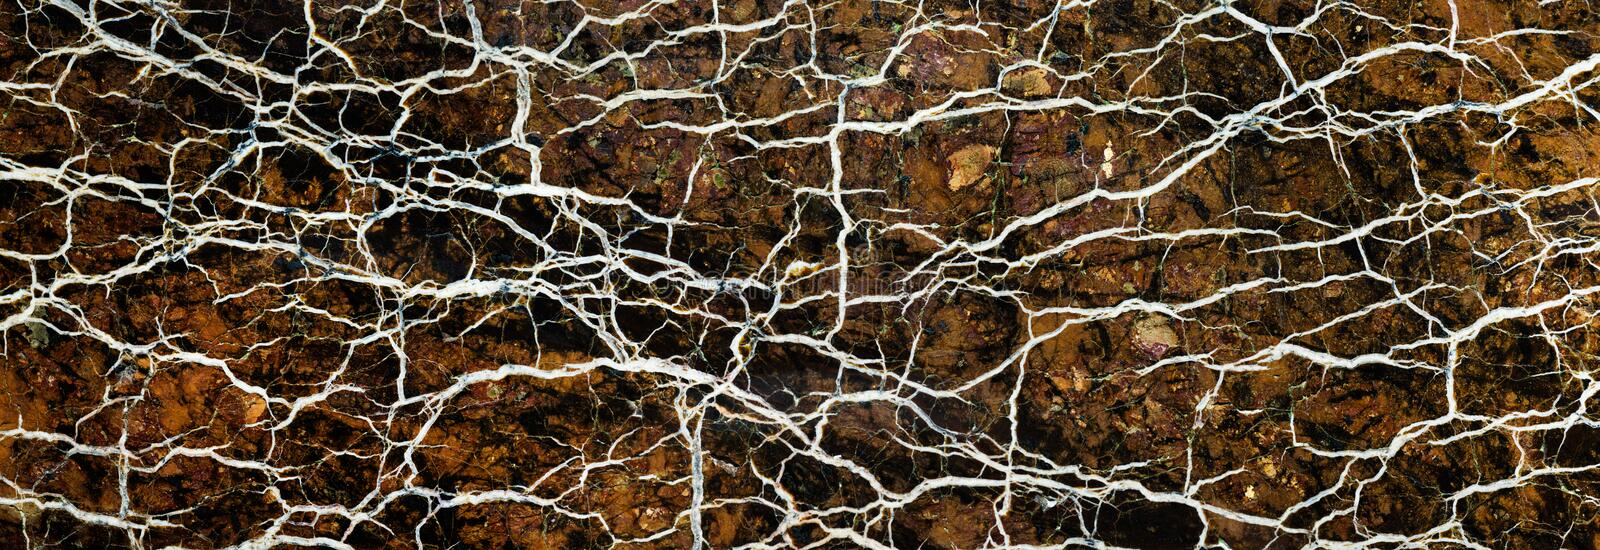 Abstract mineral texture. Backgrounds and textures: surface of beautiful brown-white decorative stone, abstract pattern of swirls, twirls, lines, cracks, spots stock image